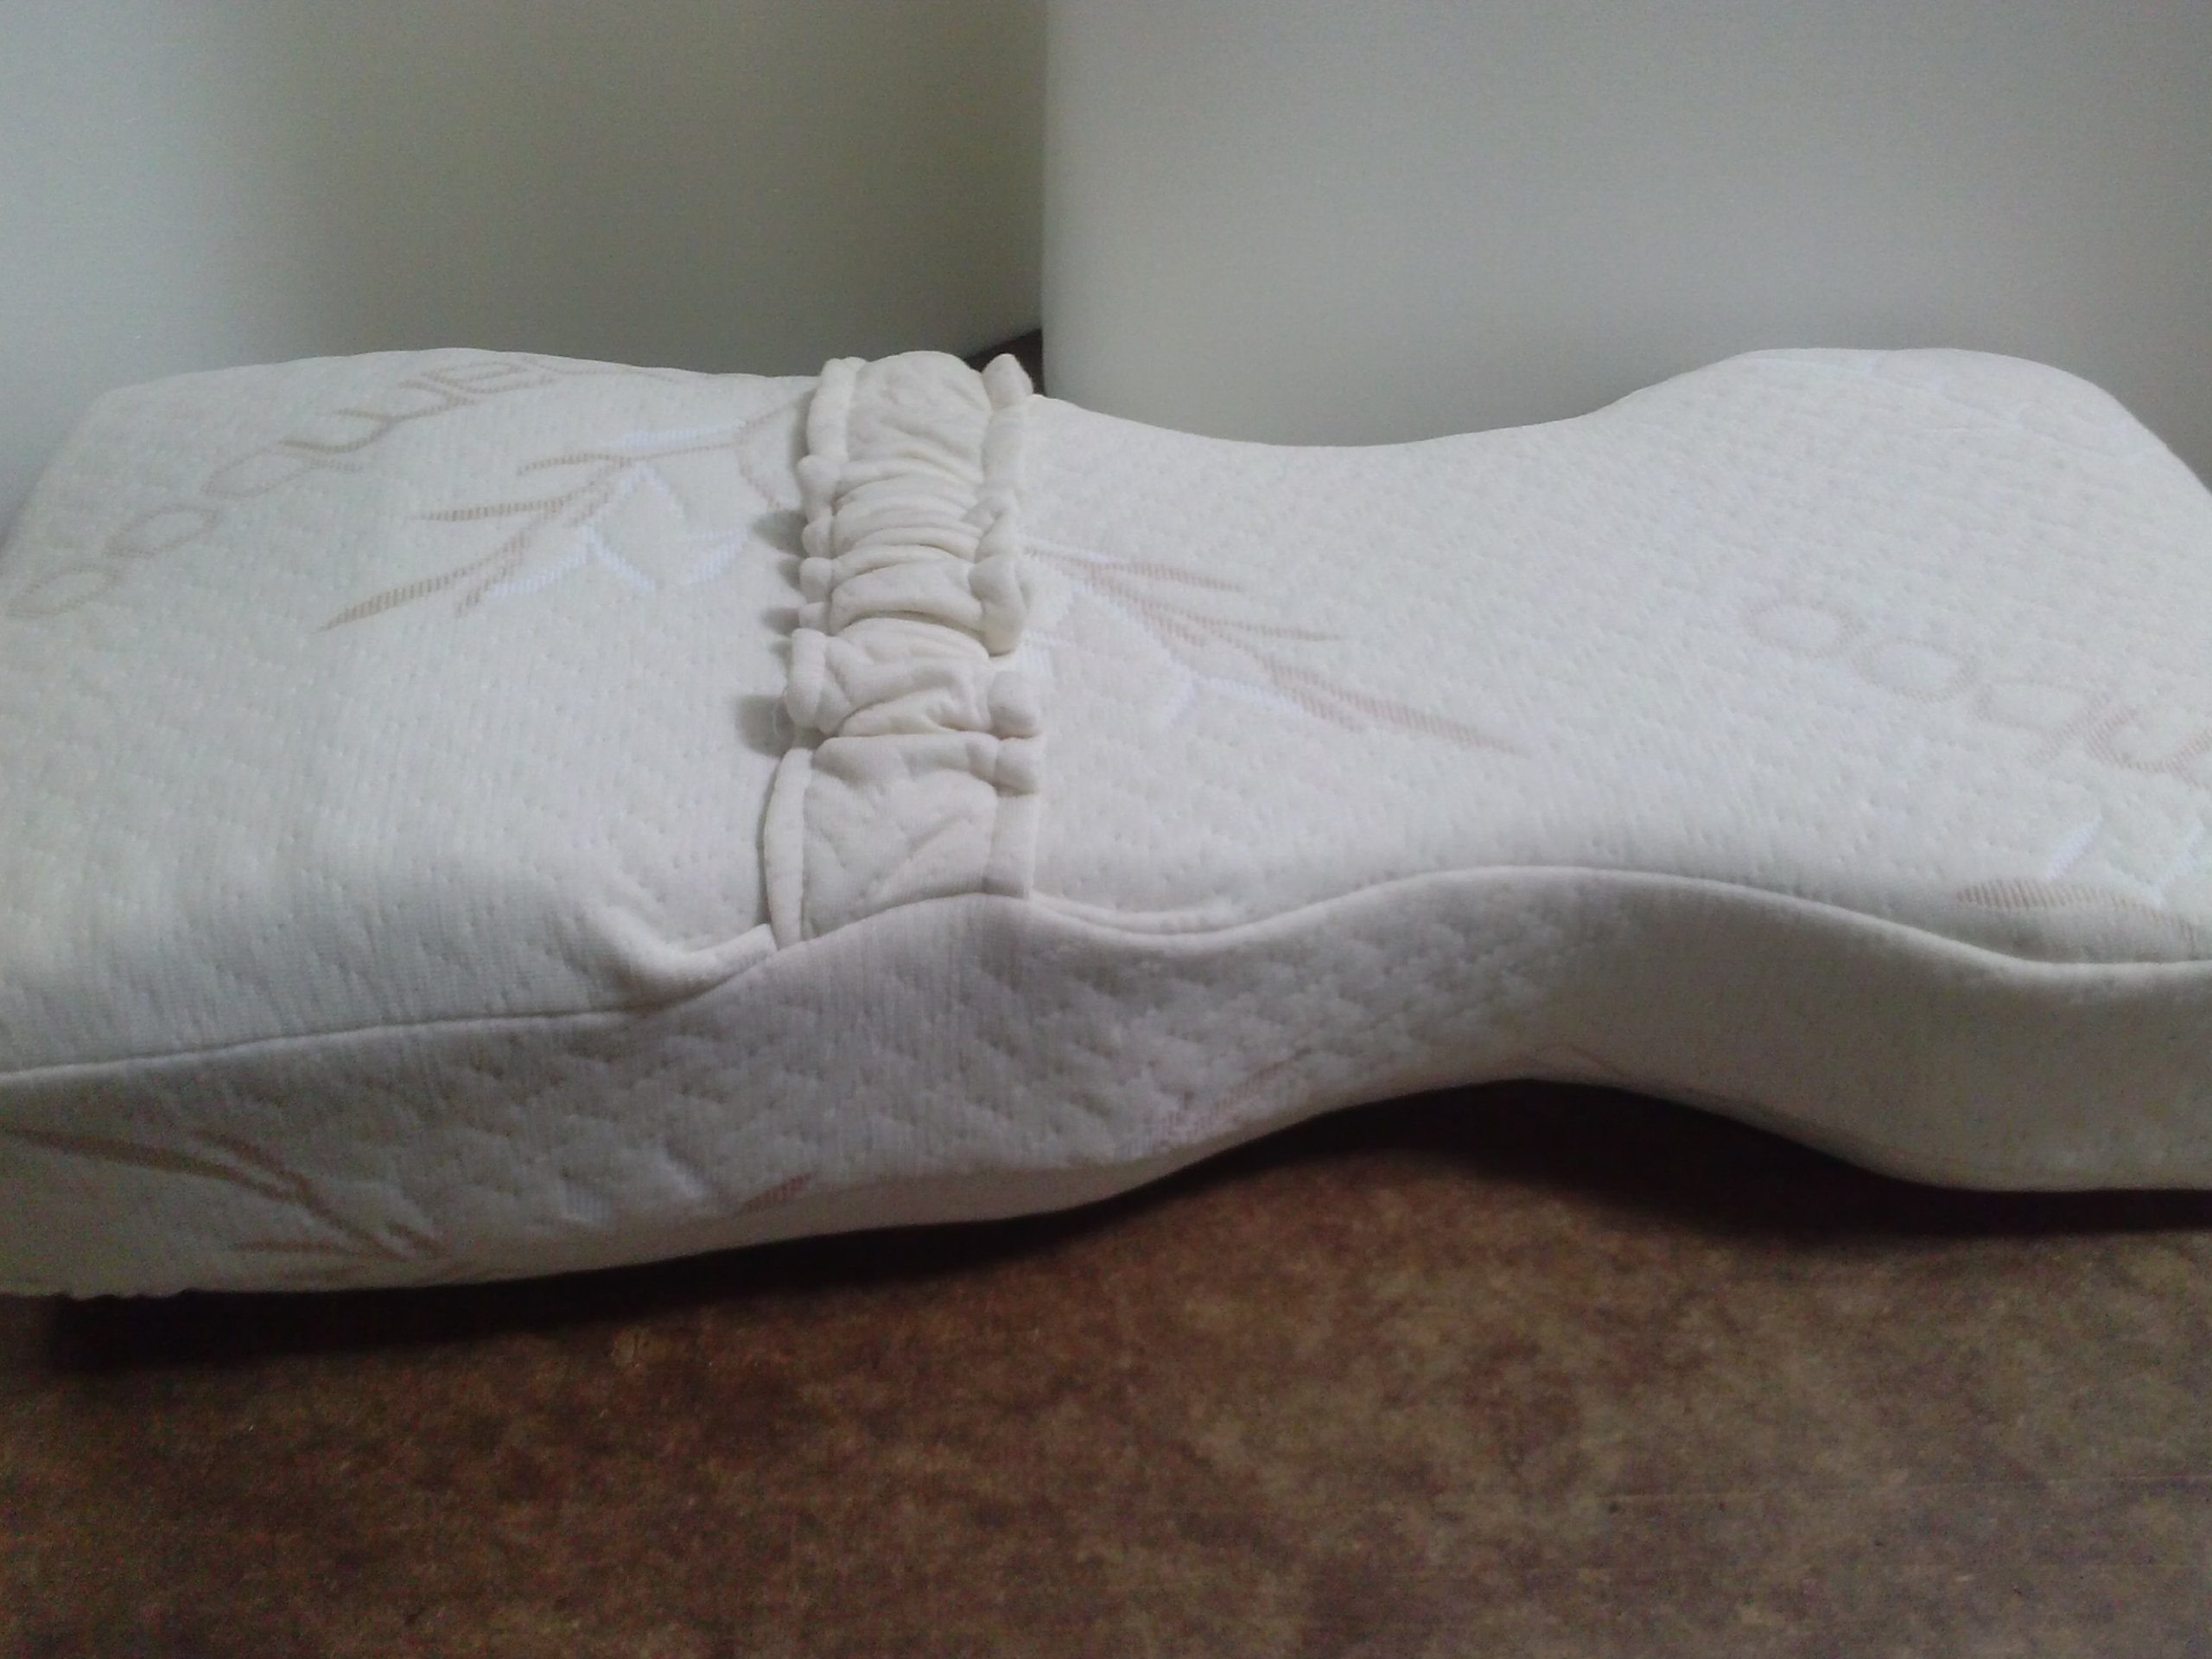 Knee-T PRO Leg Pillow by Back Support Systems - Patented and Designed by Doctors - Support for 175+ lbs, Wide Hips, Hip Replacements - for Back Pain Relief, Hip and Sciatica Pain, Side Sleepers by Back Support Systems (Image #7)